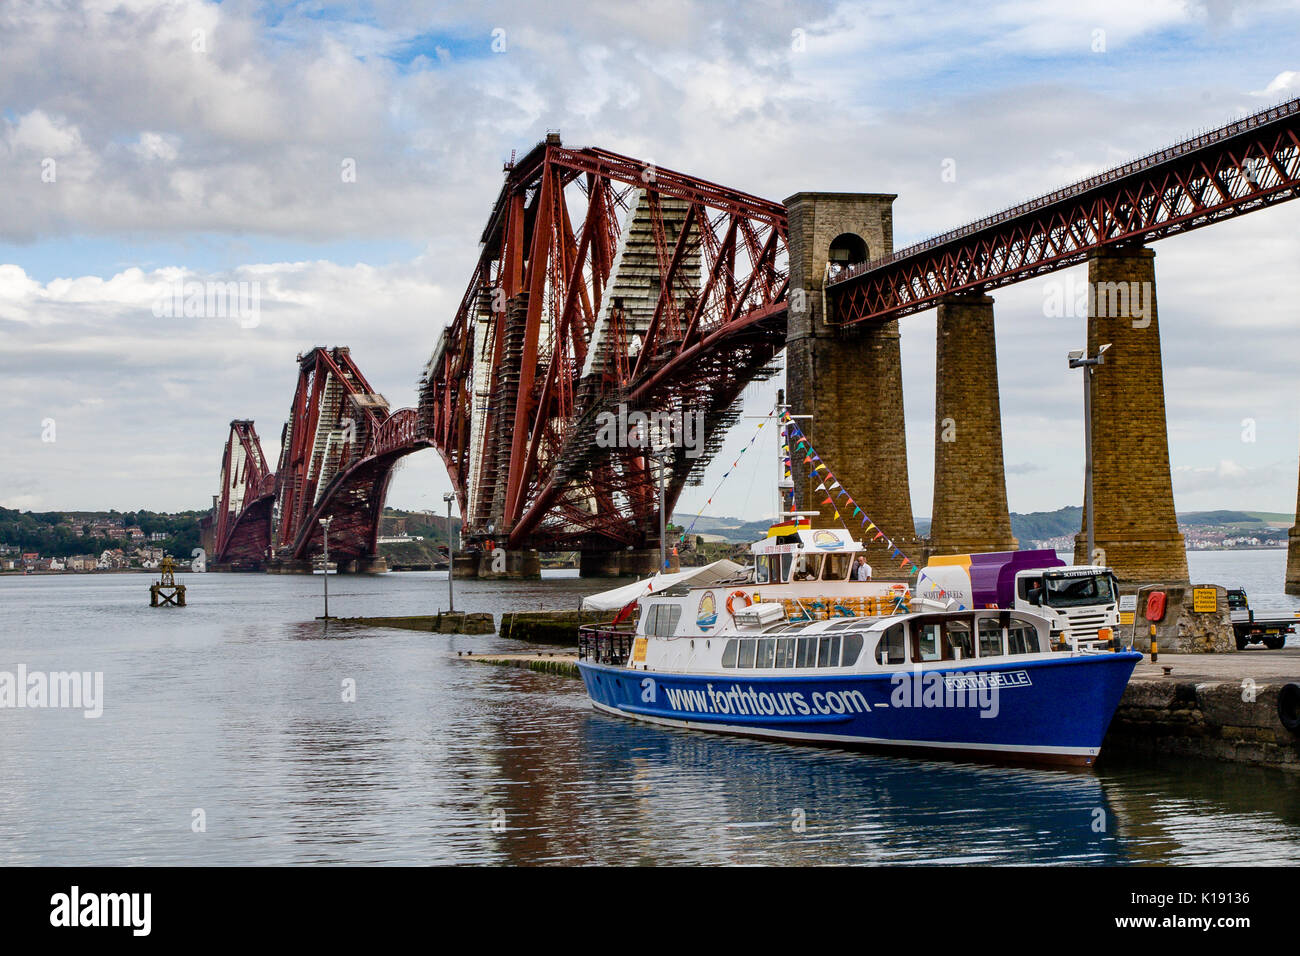 The iconic Forth Rail cantilever bridge viewed from the South Queensferry promenade with Maid of the Forth ferry with passengers for Inchcolm - Stock Image